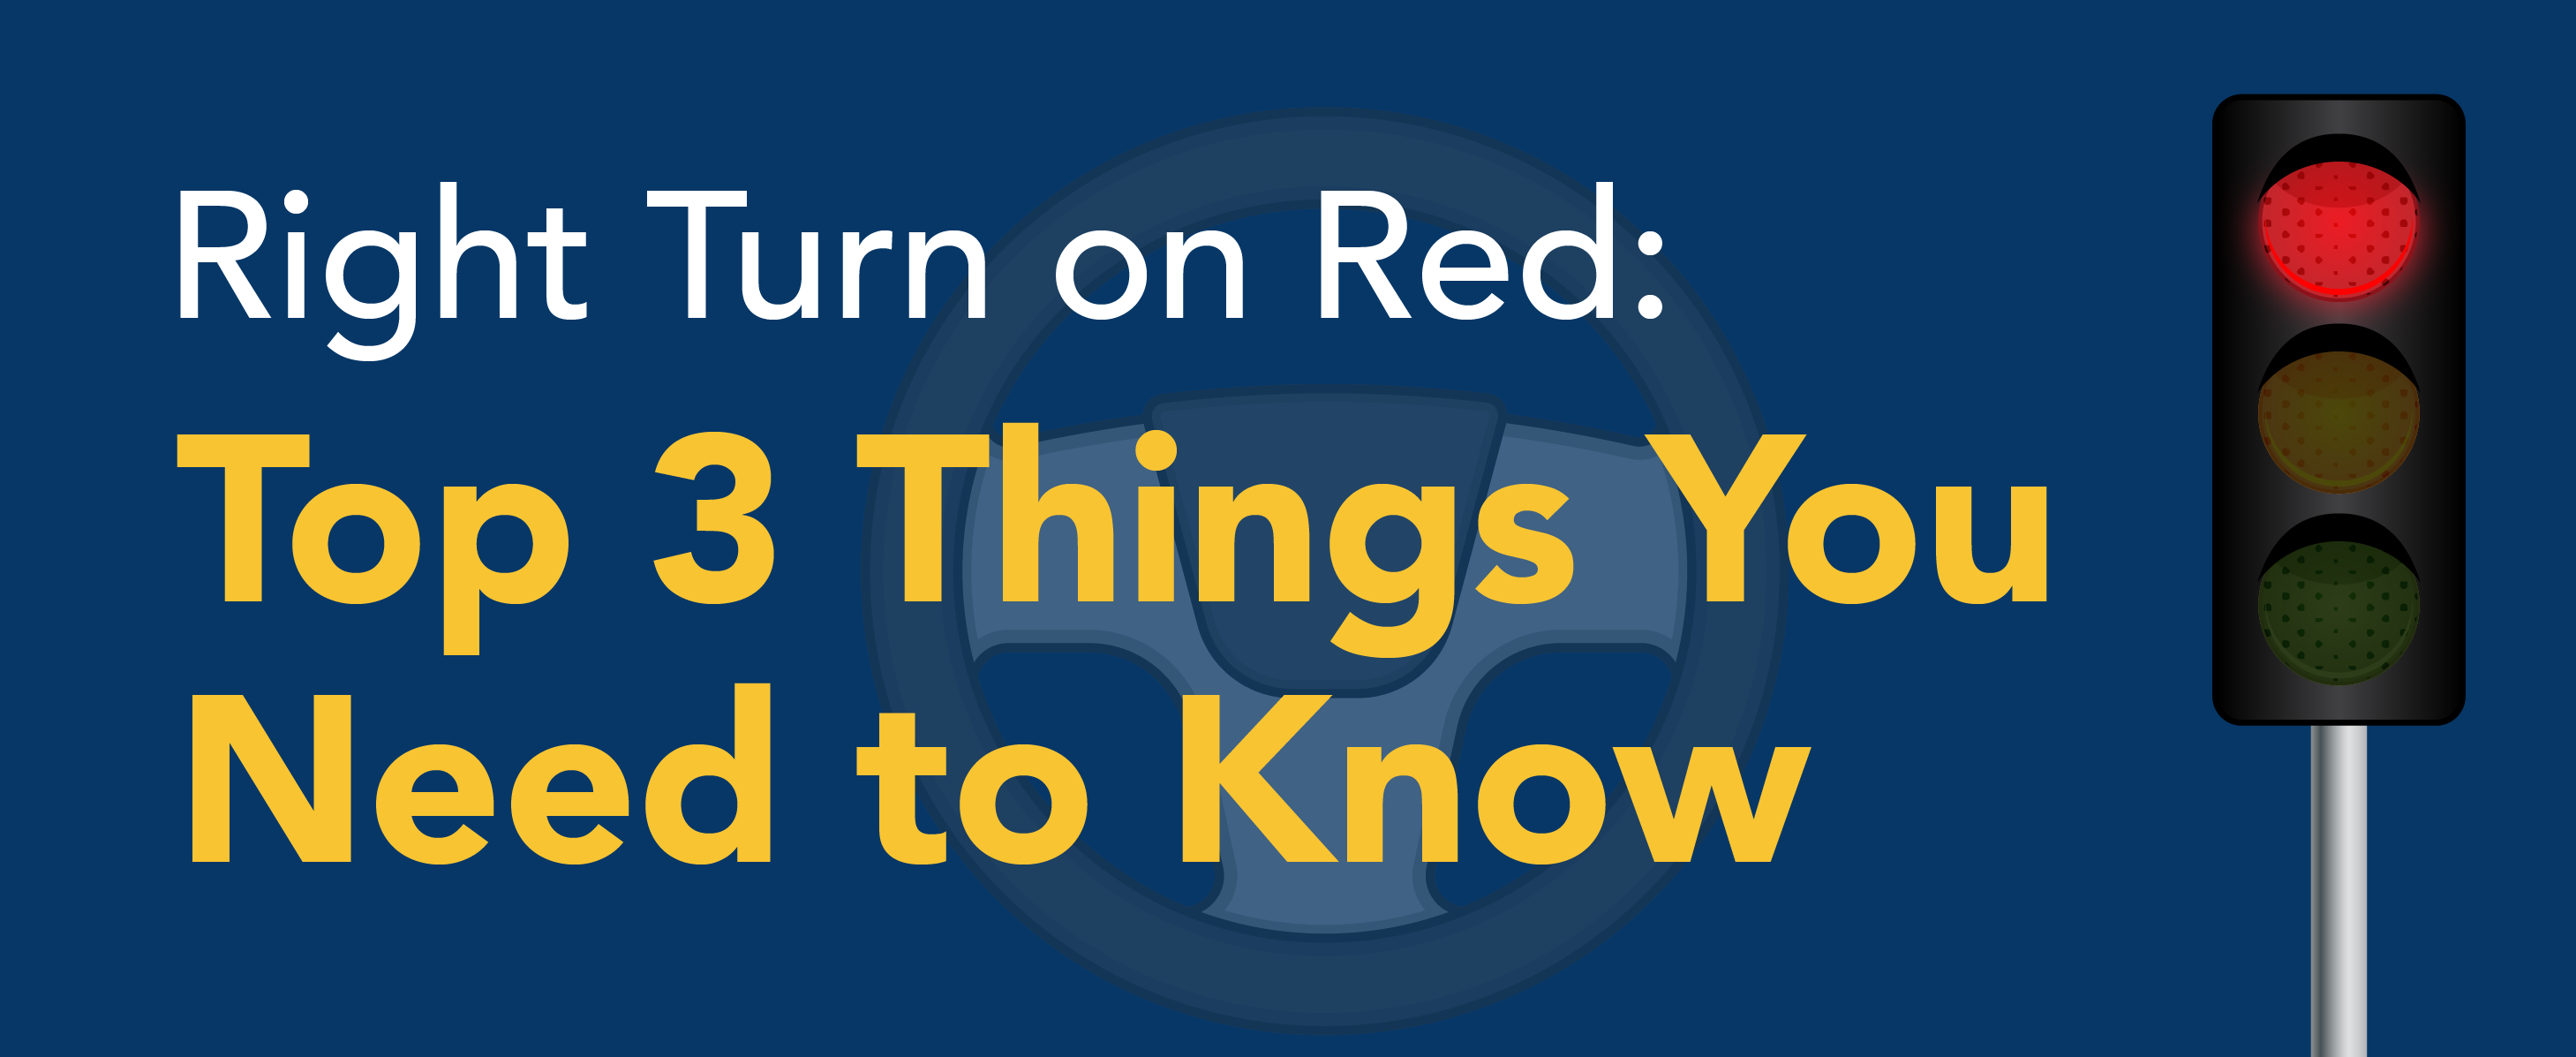 Right Turn on Red: Top 3 Things You Need to Know *image of stop light*